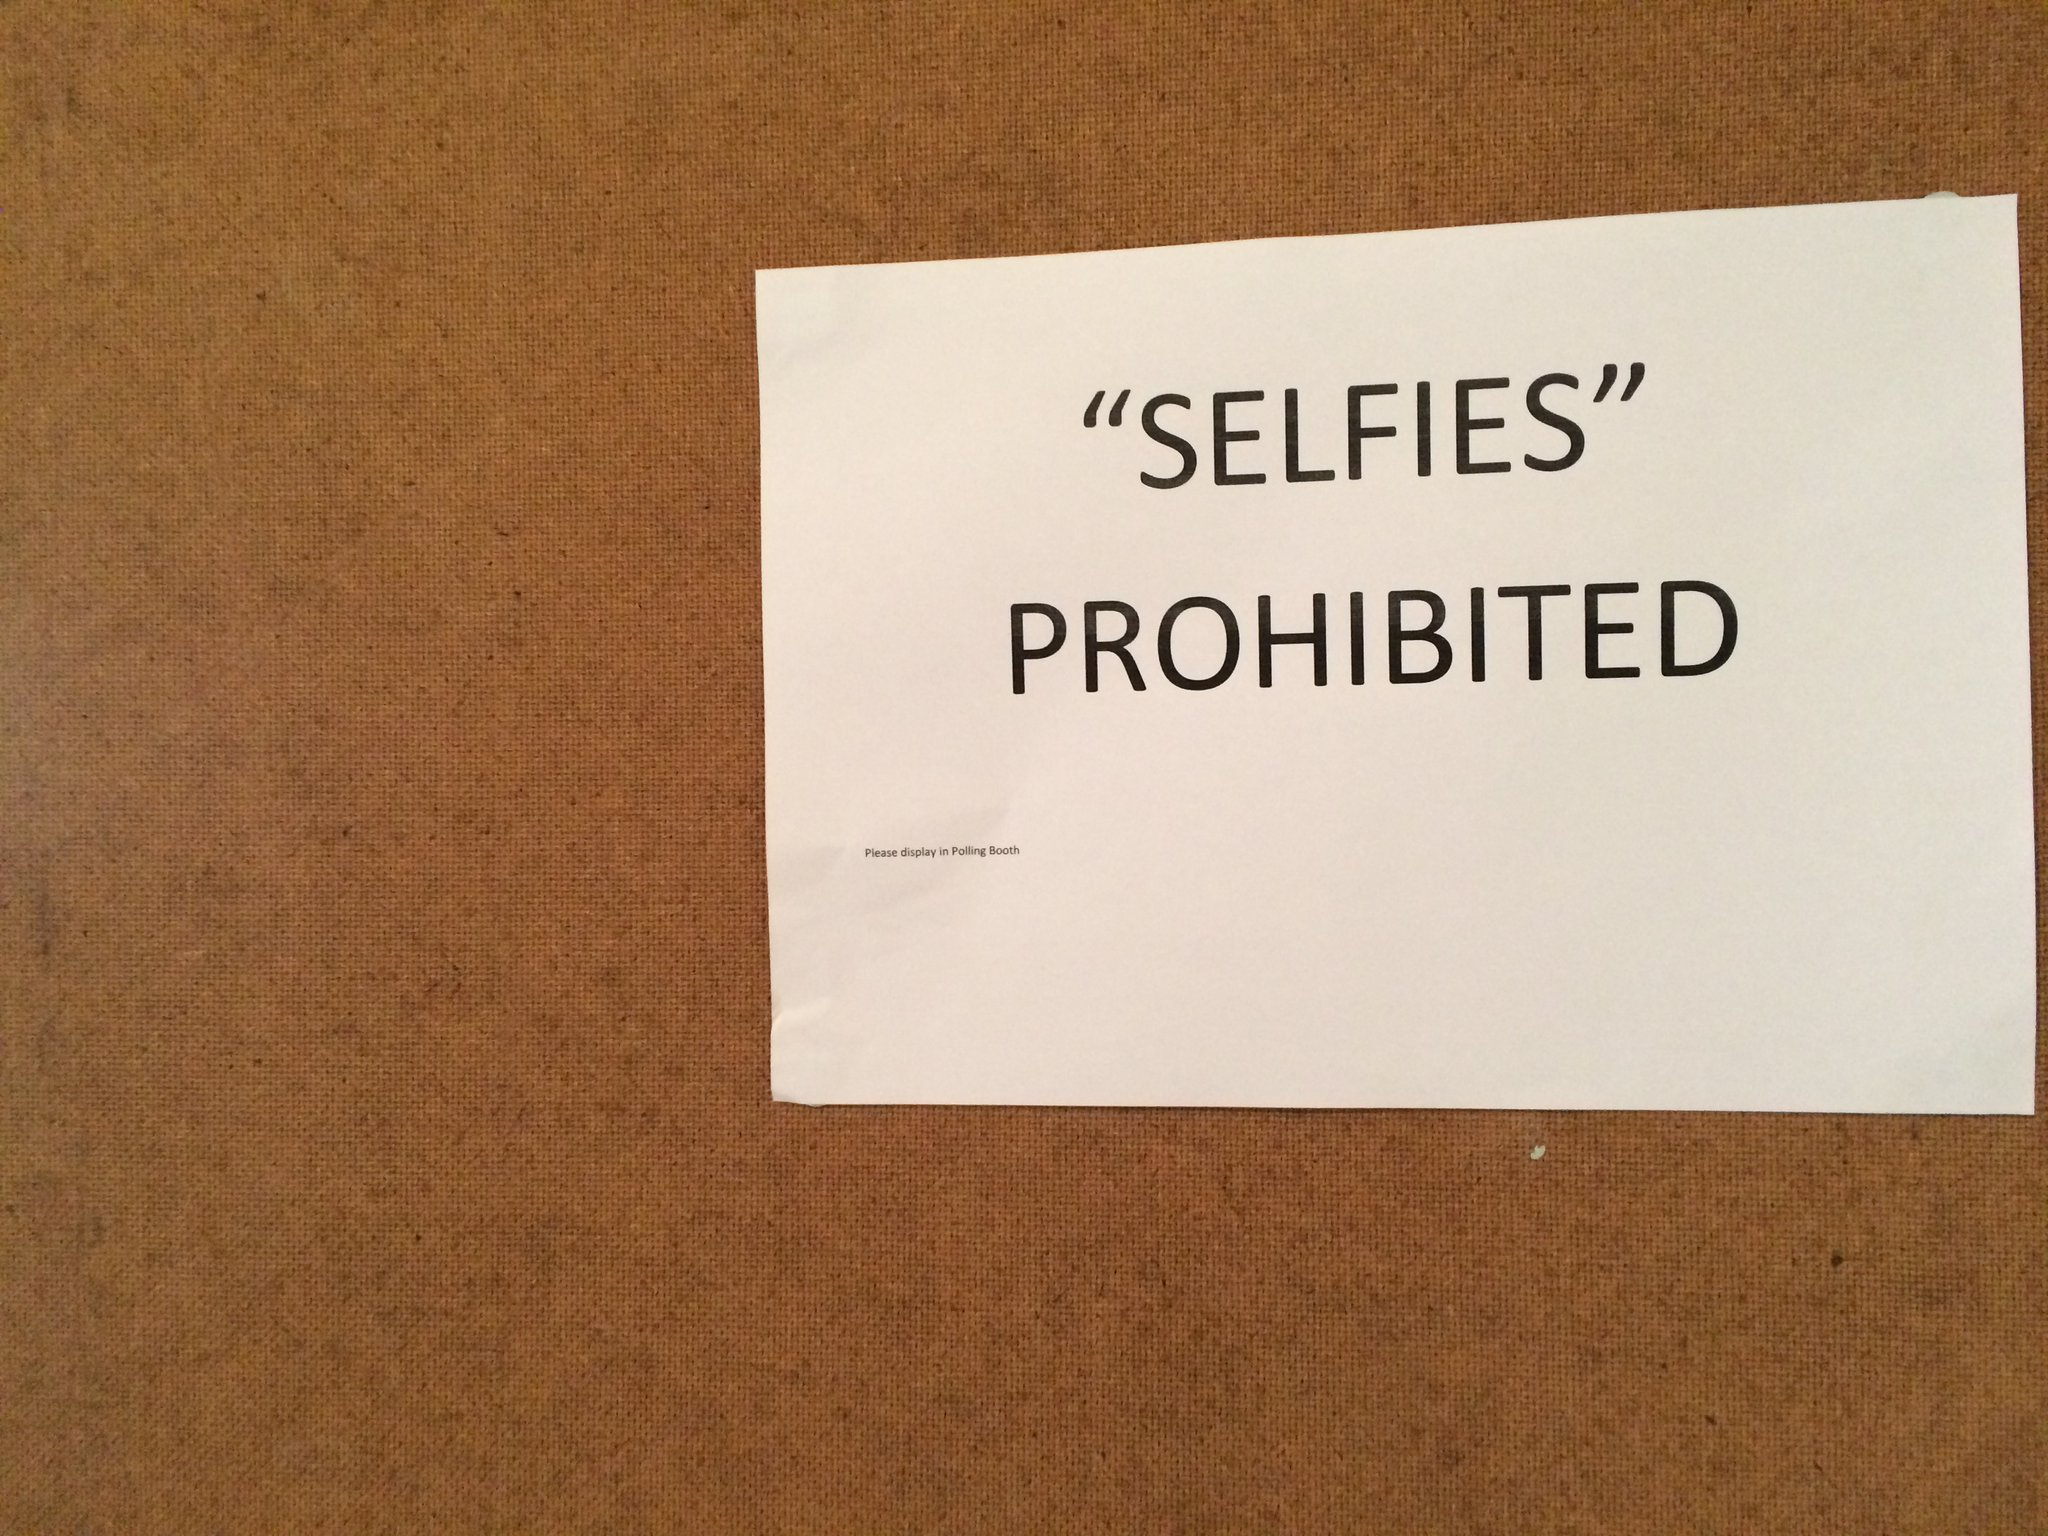 """Selfies"" prohibited at the polling station in Crosspatrick, Co. Kilkenny. Photo: MaryAnn Vaughan/KCLR"